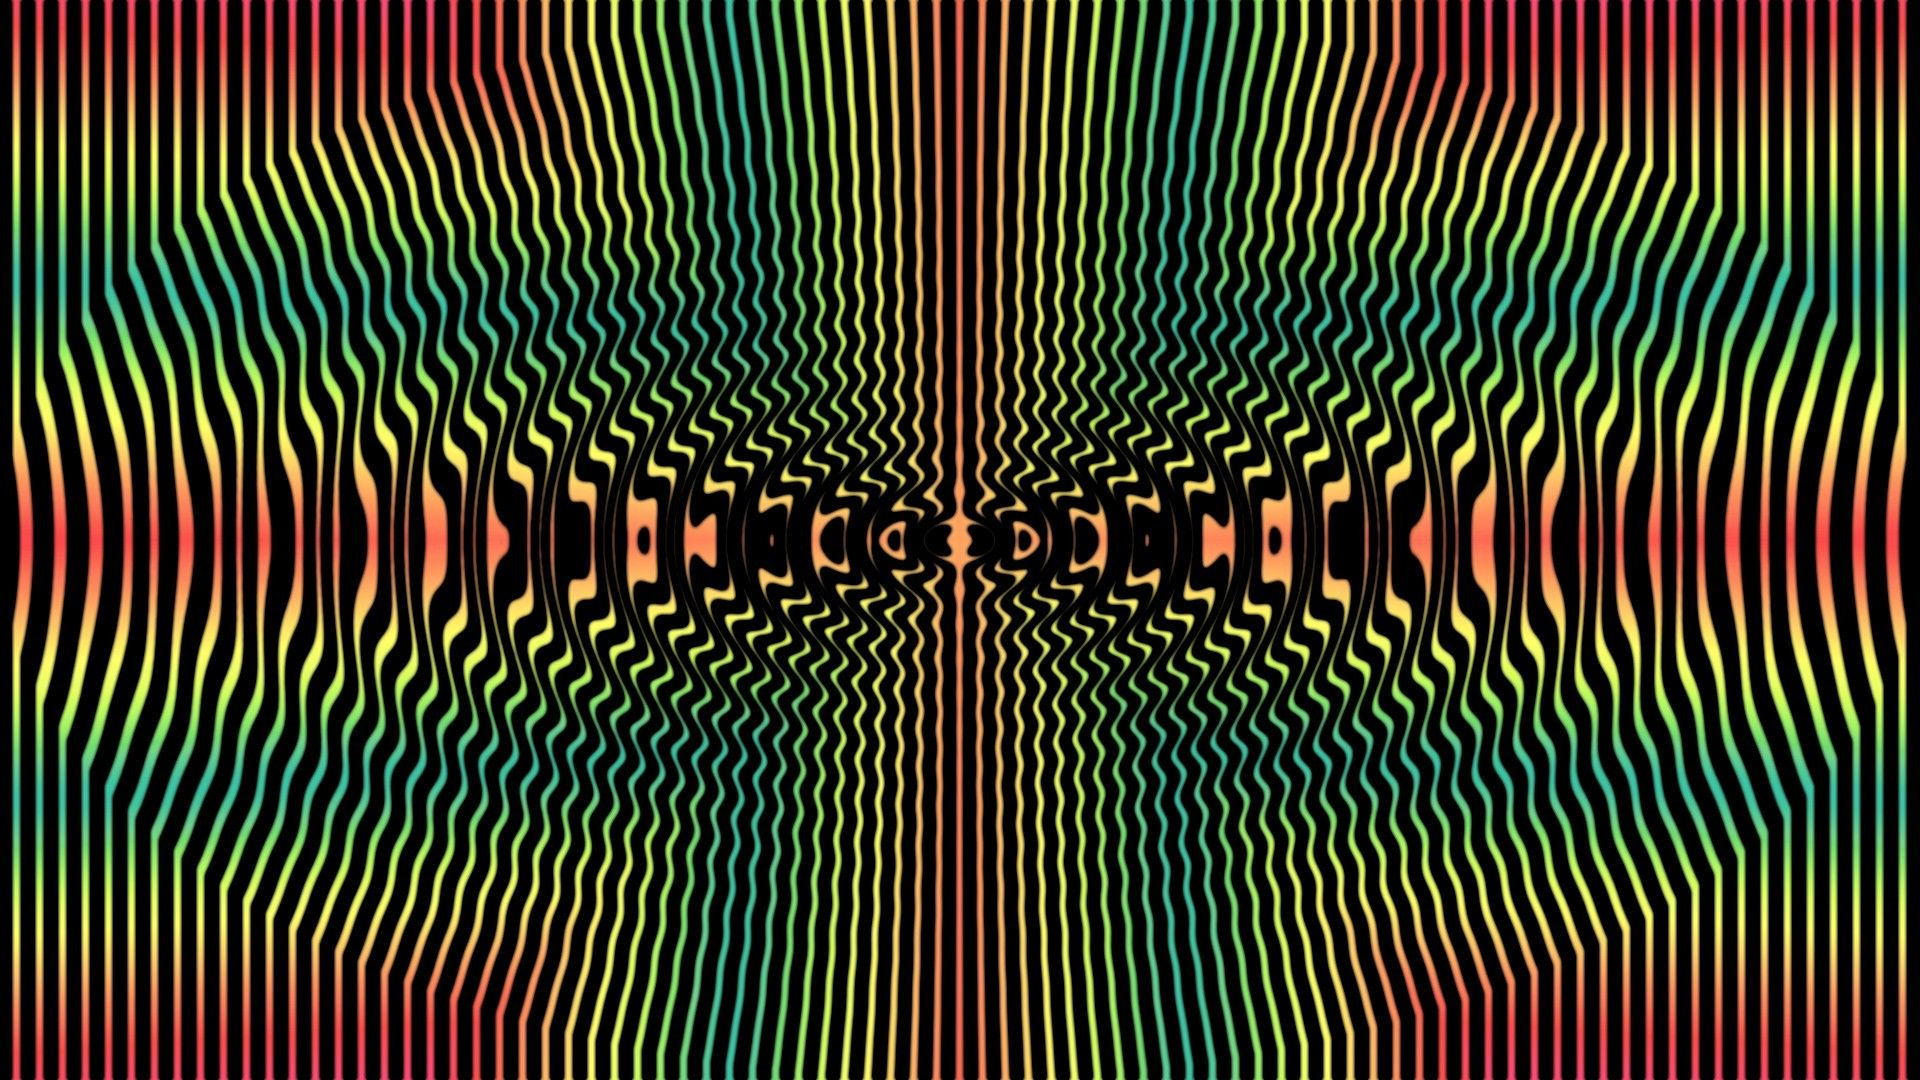 Download Hd Wallpapers Of 45128 Abstract Optical Illusion Free Download High Quality And Widescreen Re Optical Illusion Wallpaper Optical Illusions Illusions